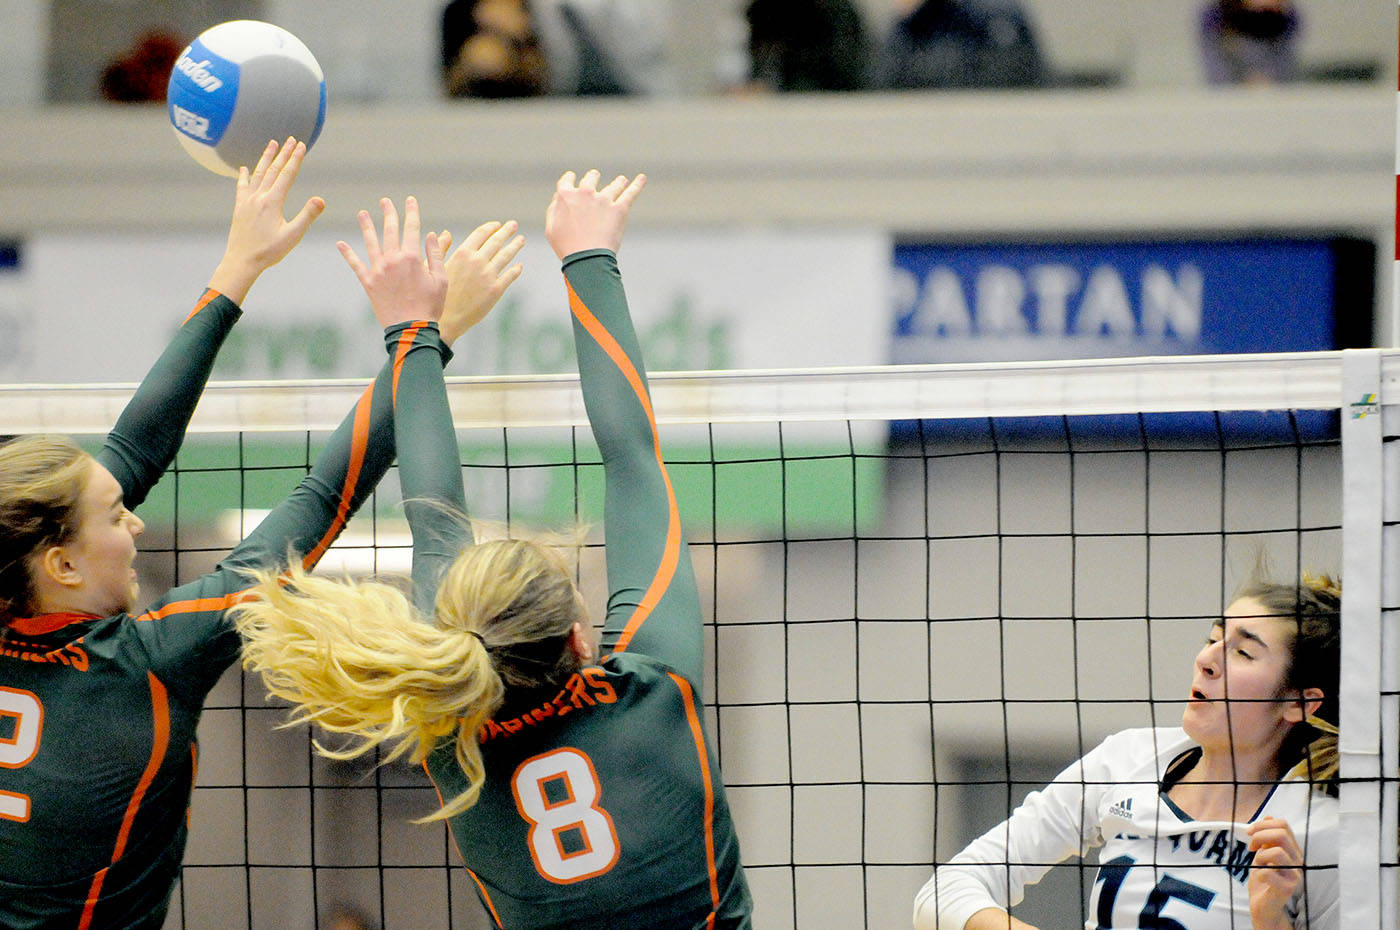 Seaquam Seahawks' Brynn Pasin sent the ball over past the outstreched fingertips of a pair of Earl Marriott Mariners players during Friday's 4A girls quarter-finals, won by Earl Marriott. The match was part of the Big Kahuna BC Volleyball Championships that wrap up Saturday with the gold medal games at the Langley Events Centre. Troy Landreville Black Press